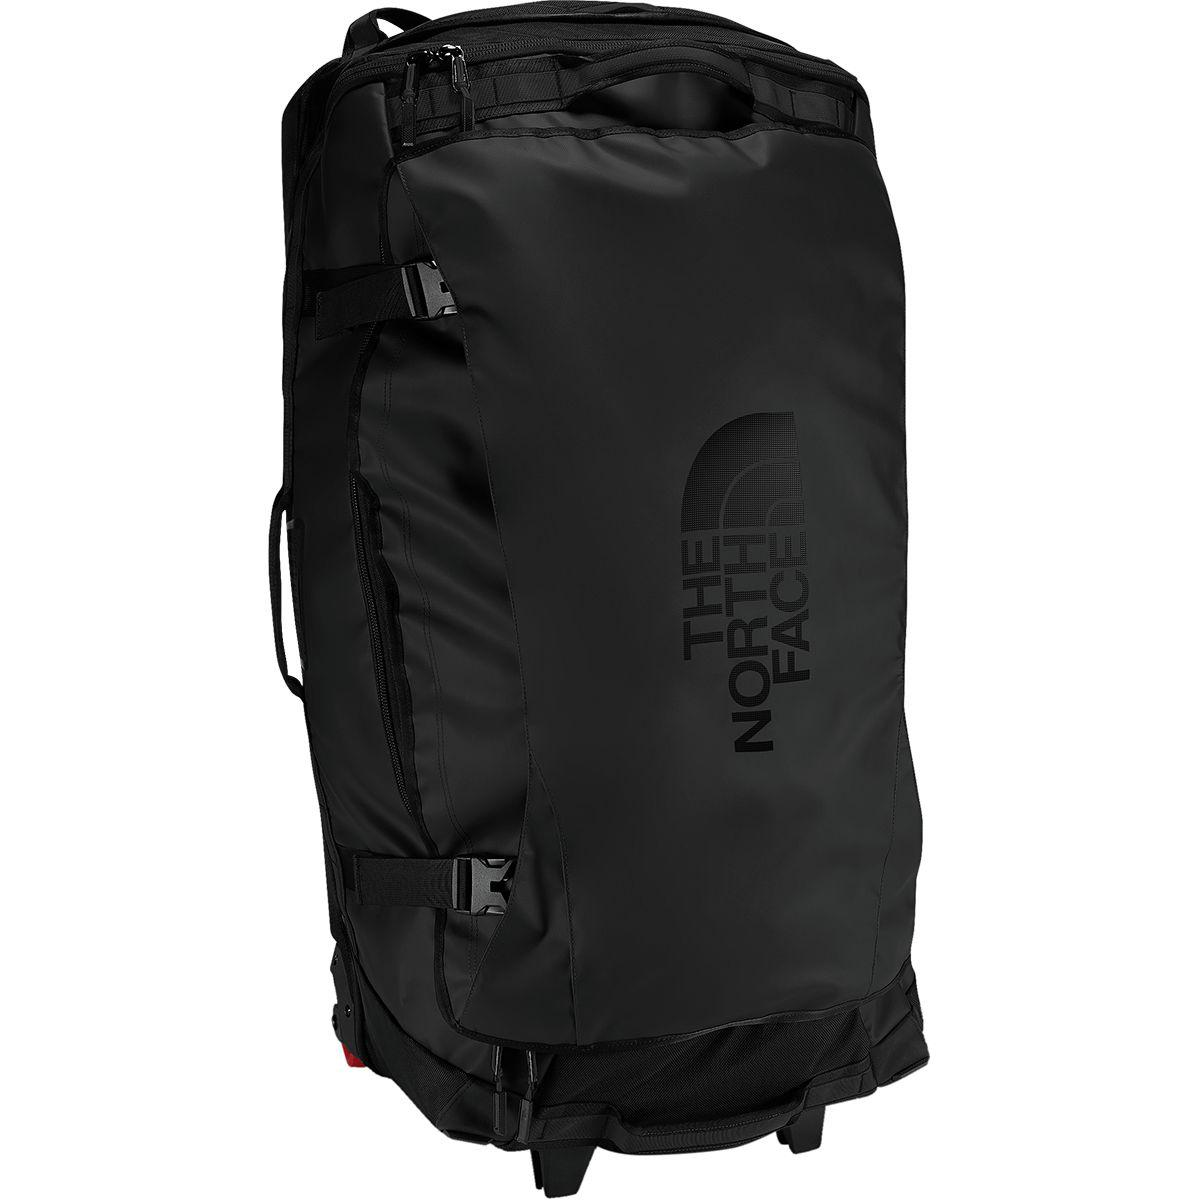 Lyst - The North Face Rolling Thunder Wheeled Duffel Bag - in Black ... 4150a6f5e6f8